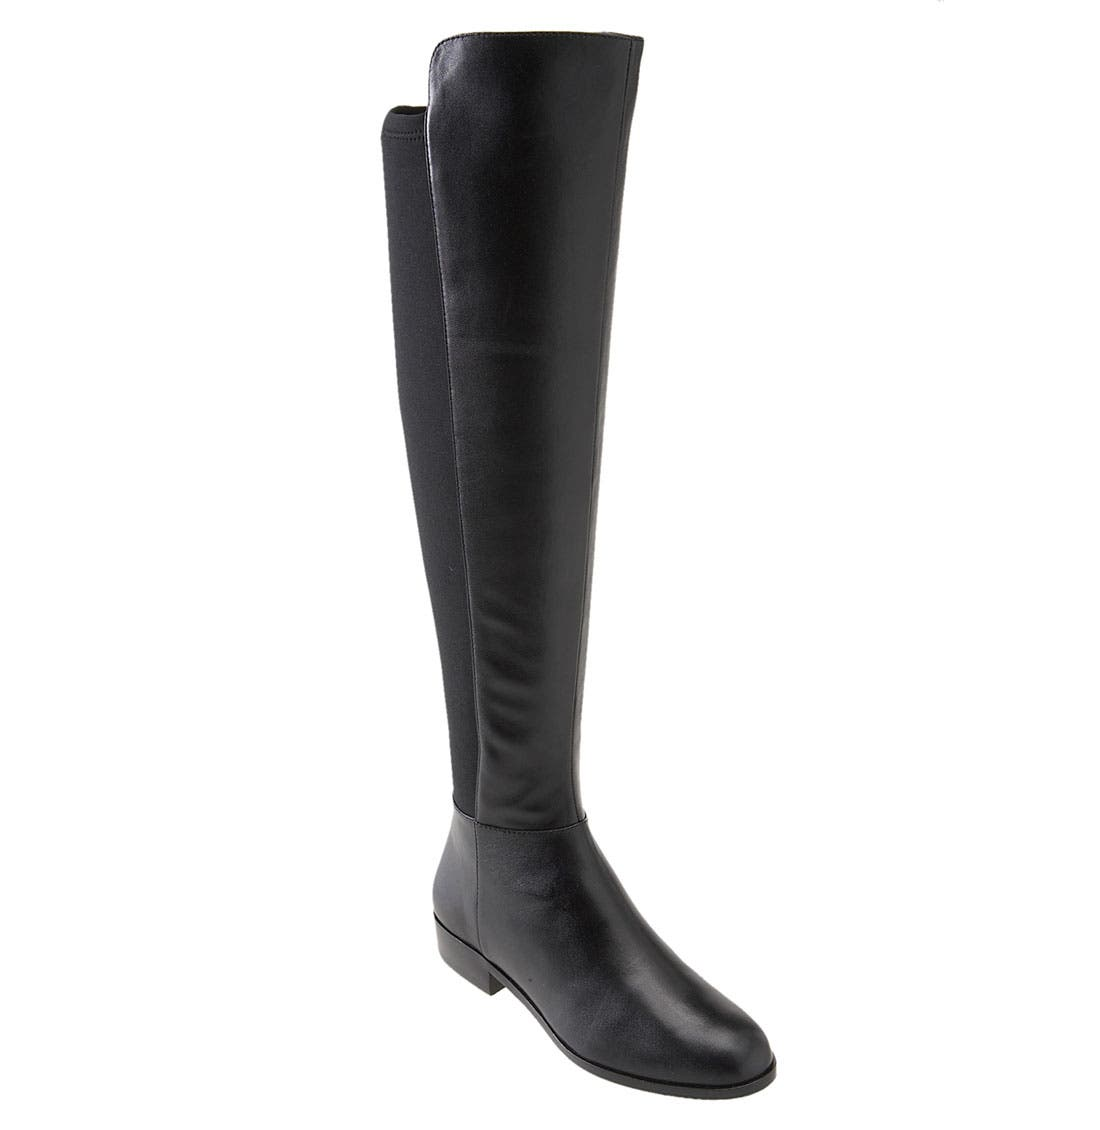 Alternate Image 1 Selected - MICHAEL Michael Kors 'Bromley' Over the Knee Boot